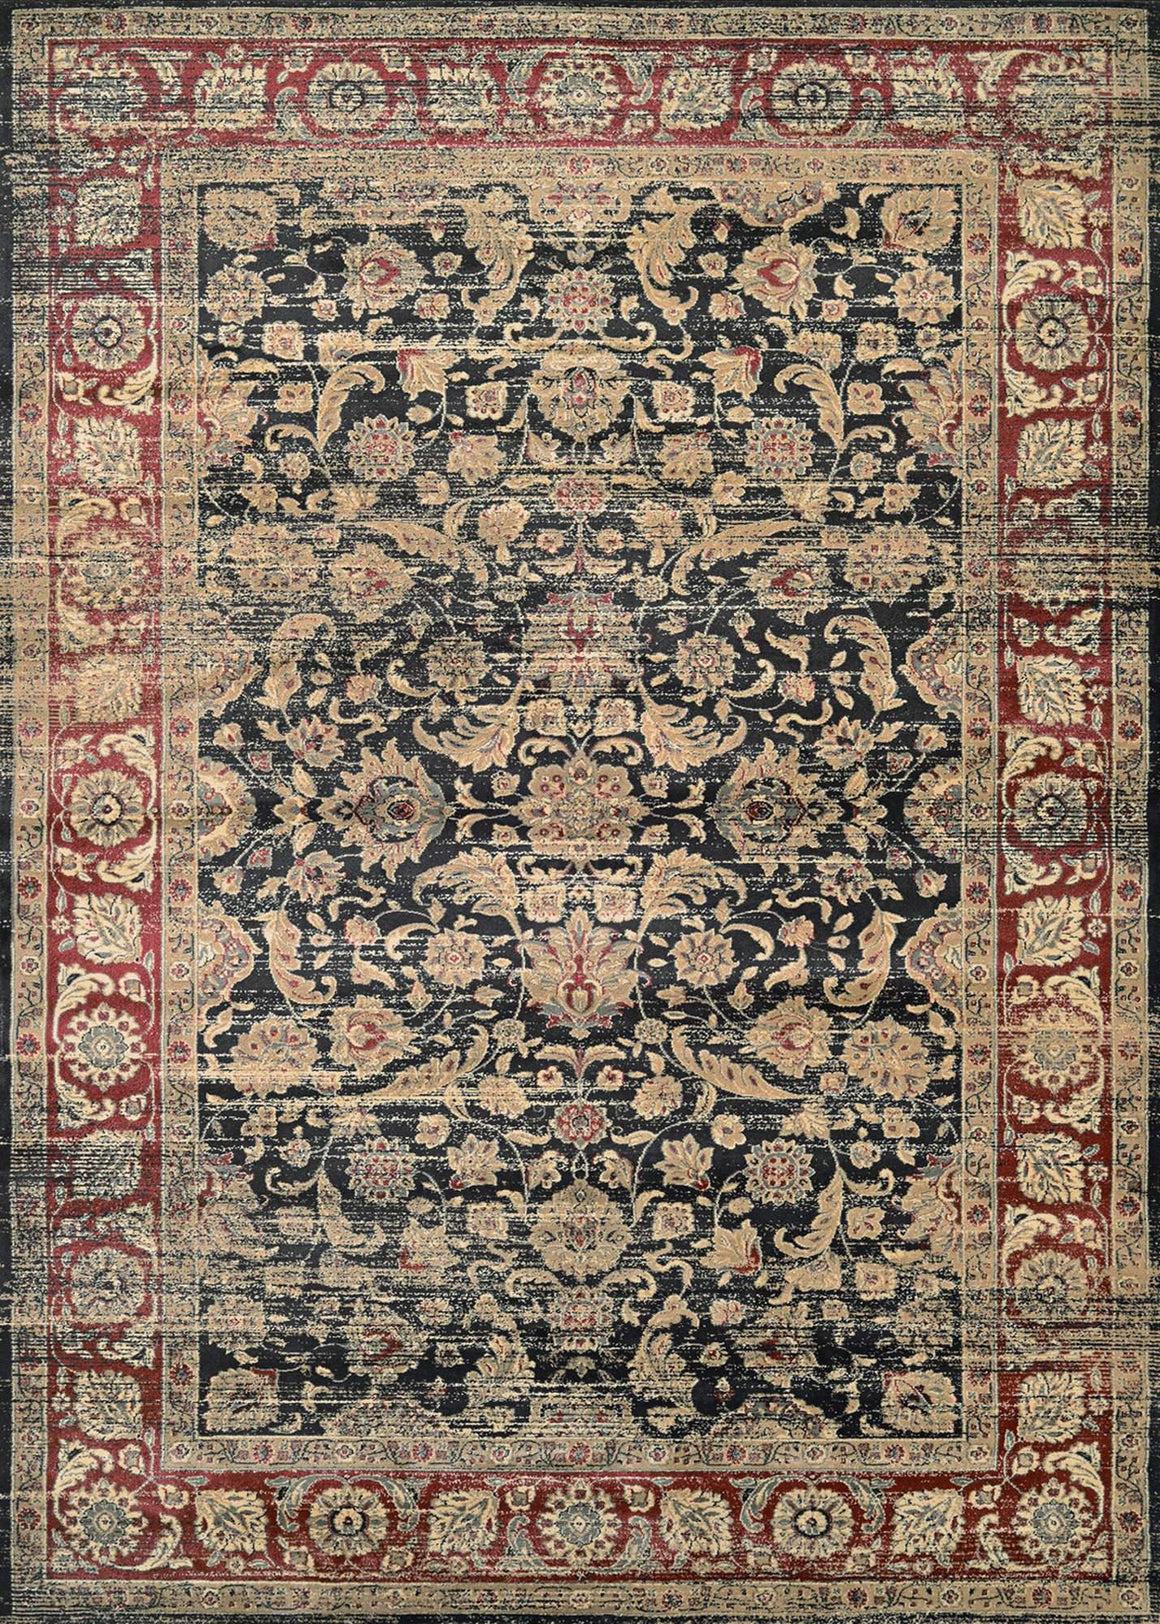 Zahara Embellished Blossom Vintage Inspired Area Rugs